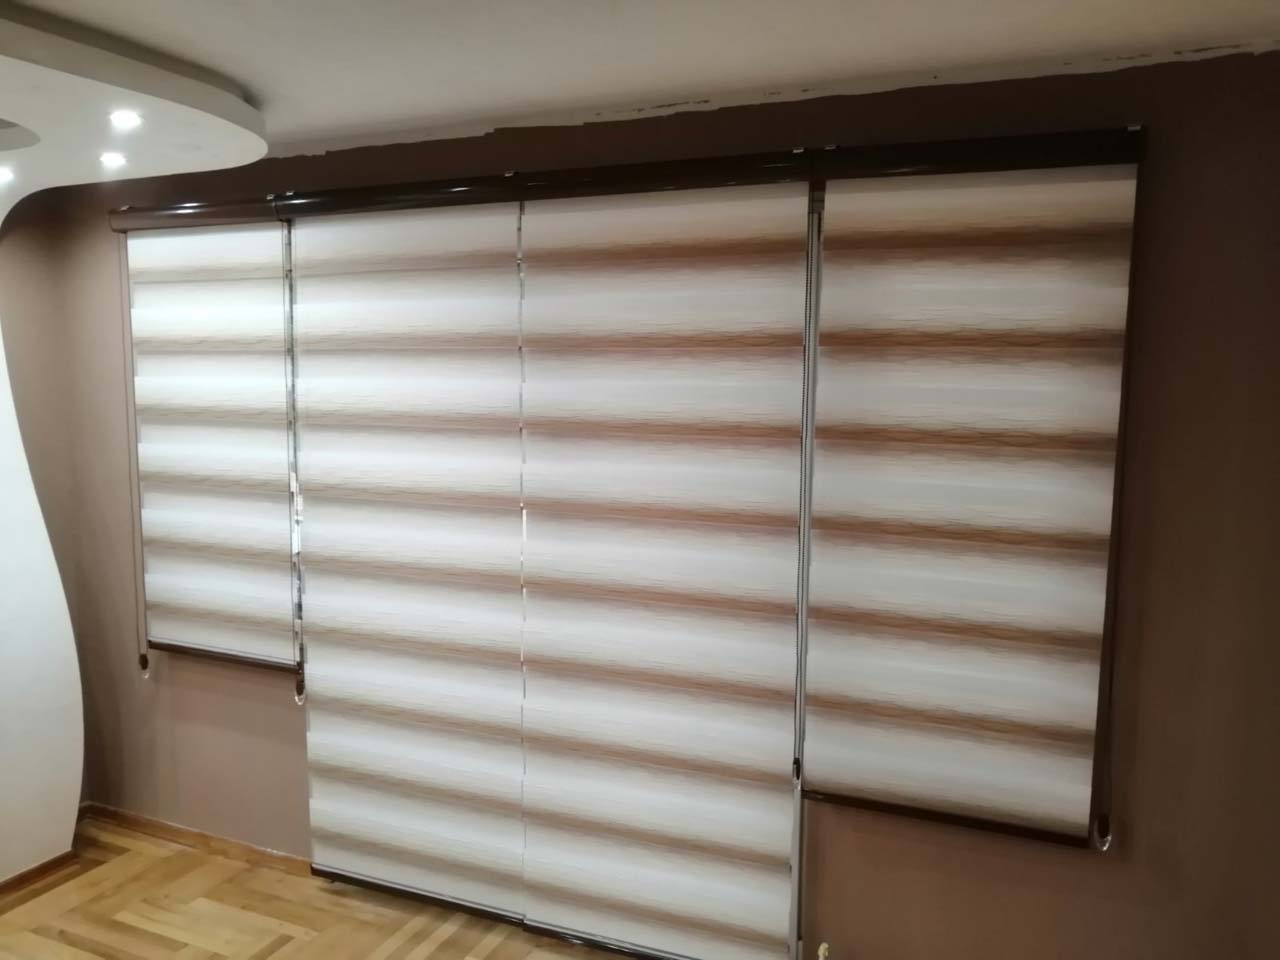 CURTAIN ROLLER BLINDS M ROLL  Awnings, Venetian Blinds, Blinds Kragujevac - Photo 4